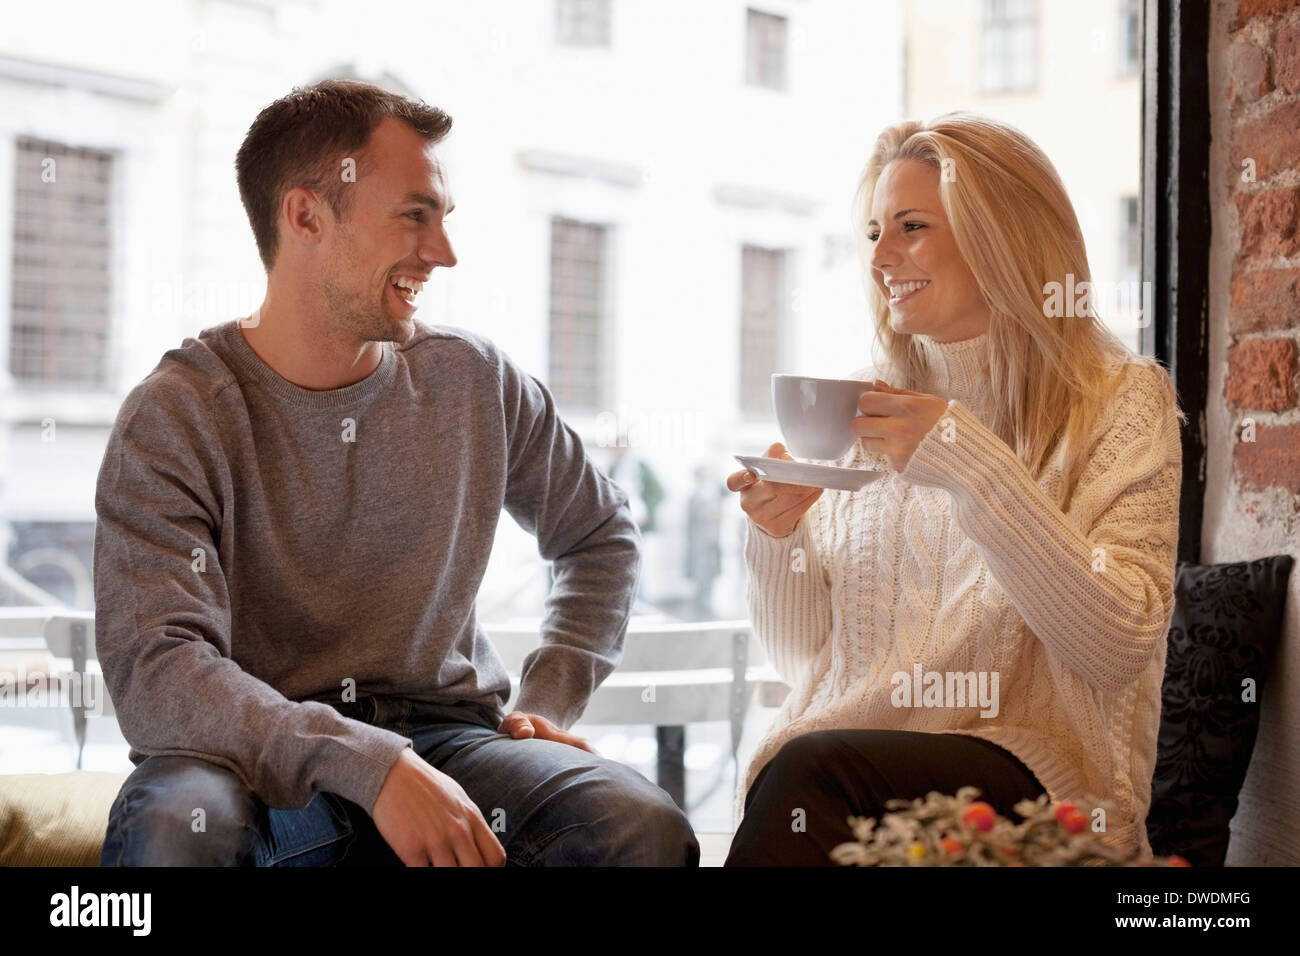 Happy young couple spending leisure time at cafe - Stock Image